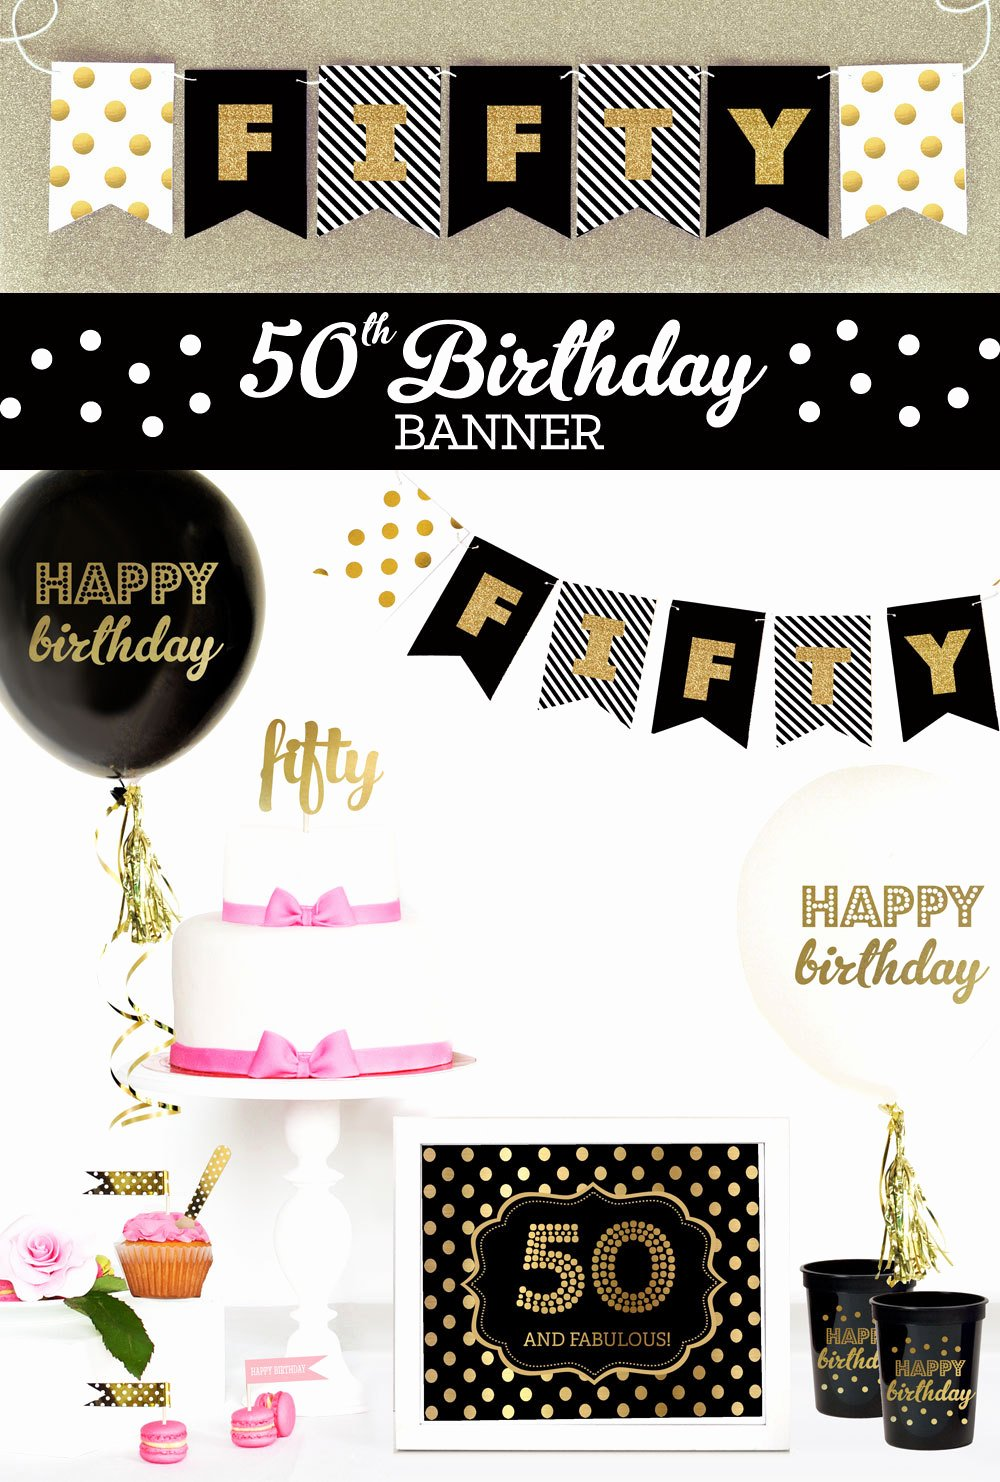 50th Birthday Banner Ideas Lovely Happy 50th Birthday Banner 50th Birthday Decorations 50th